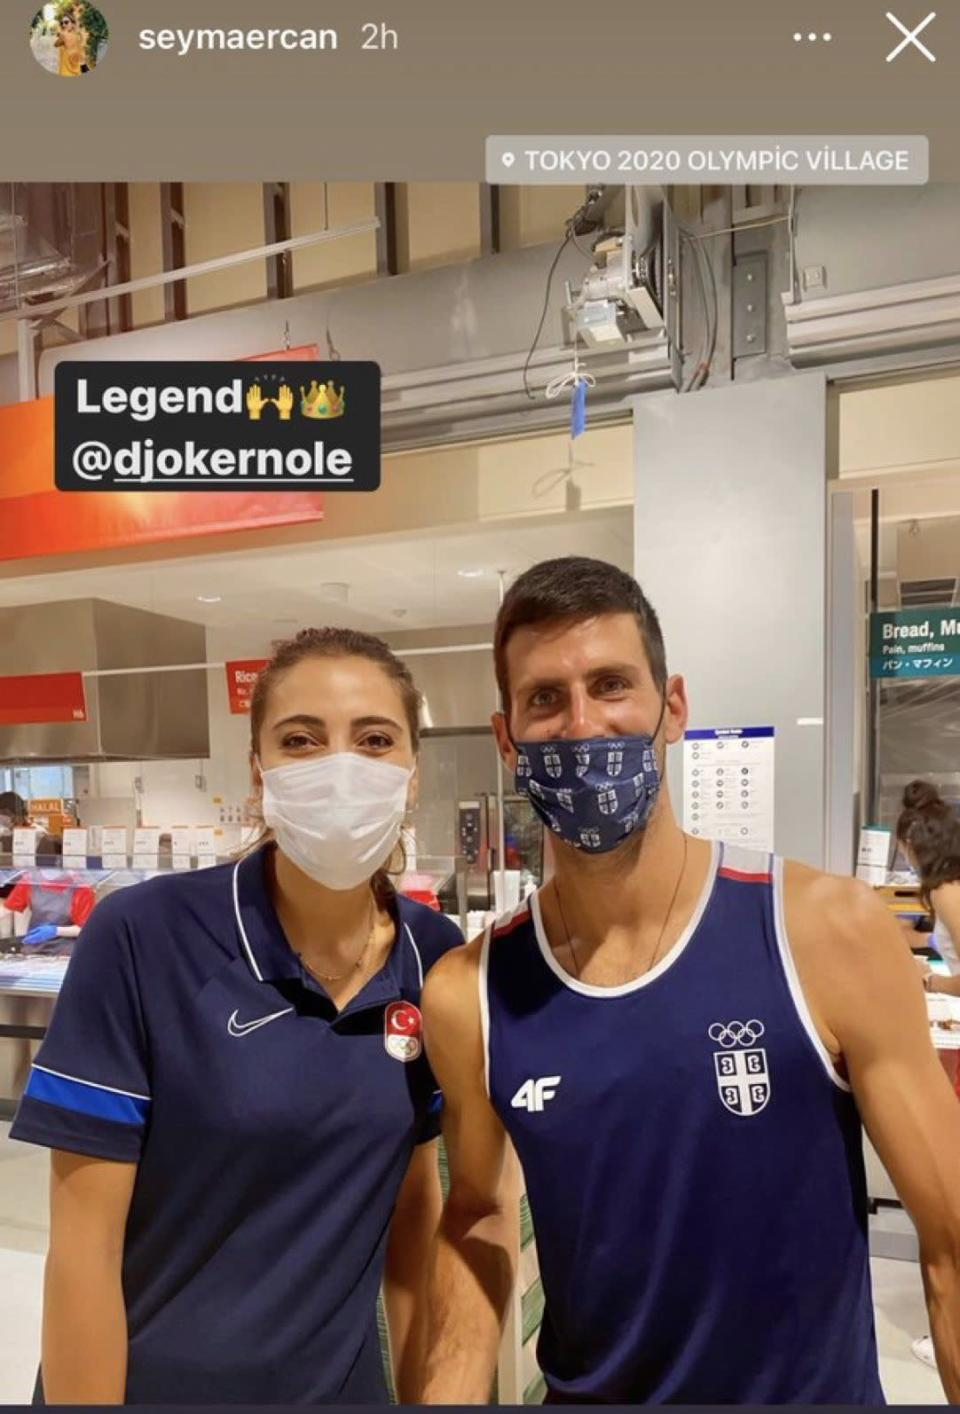 Seyma Ercan from the Turkish volleyball team also posted a photo of her and Djokovic on her Instagram story. (Photo courtesy of @seymaercan/Instagram)